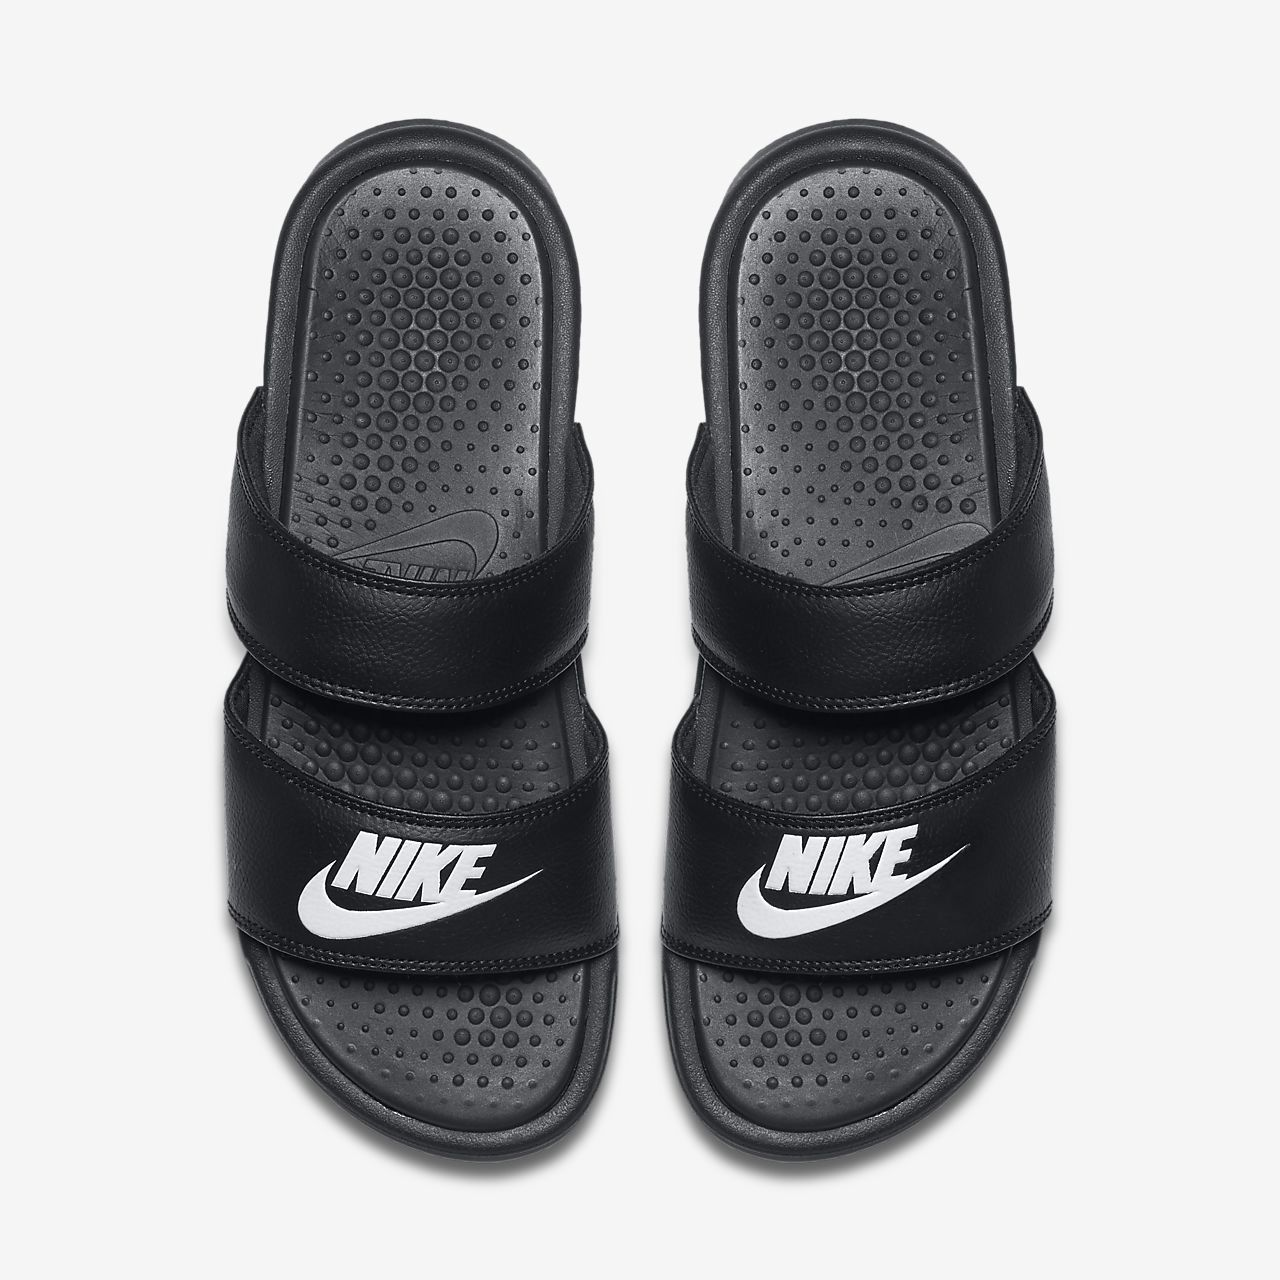 best sneakers 67b89 cca7e Shoes2   Shoes   Pinterest   Nike slippers, Bling nike shoes and Shoes